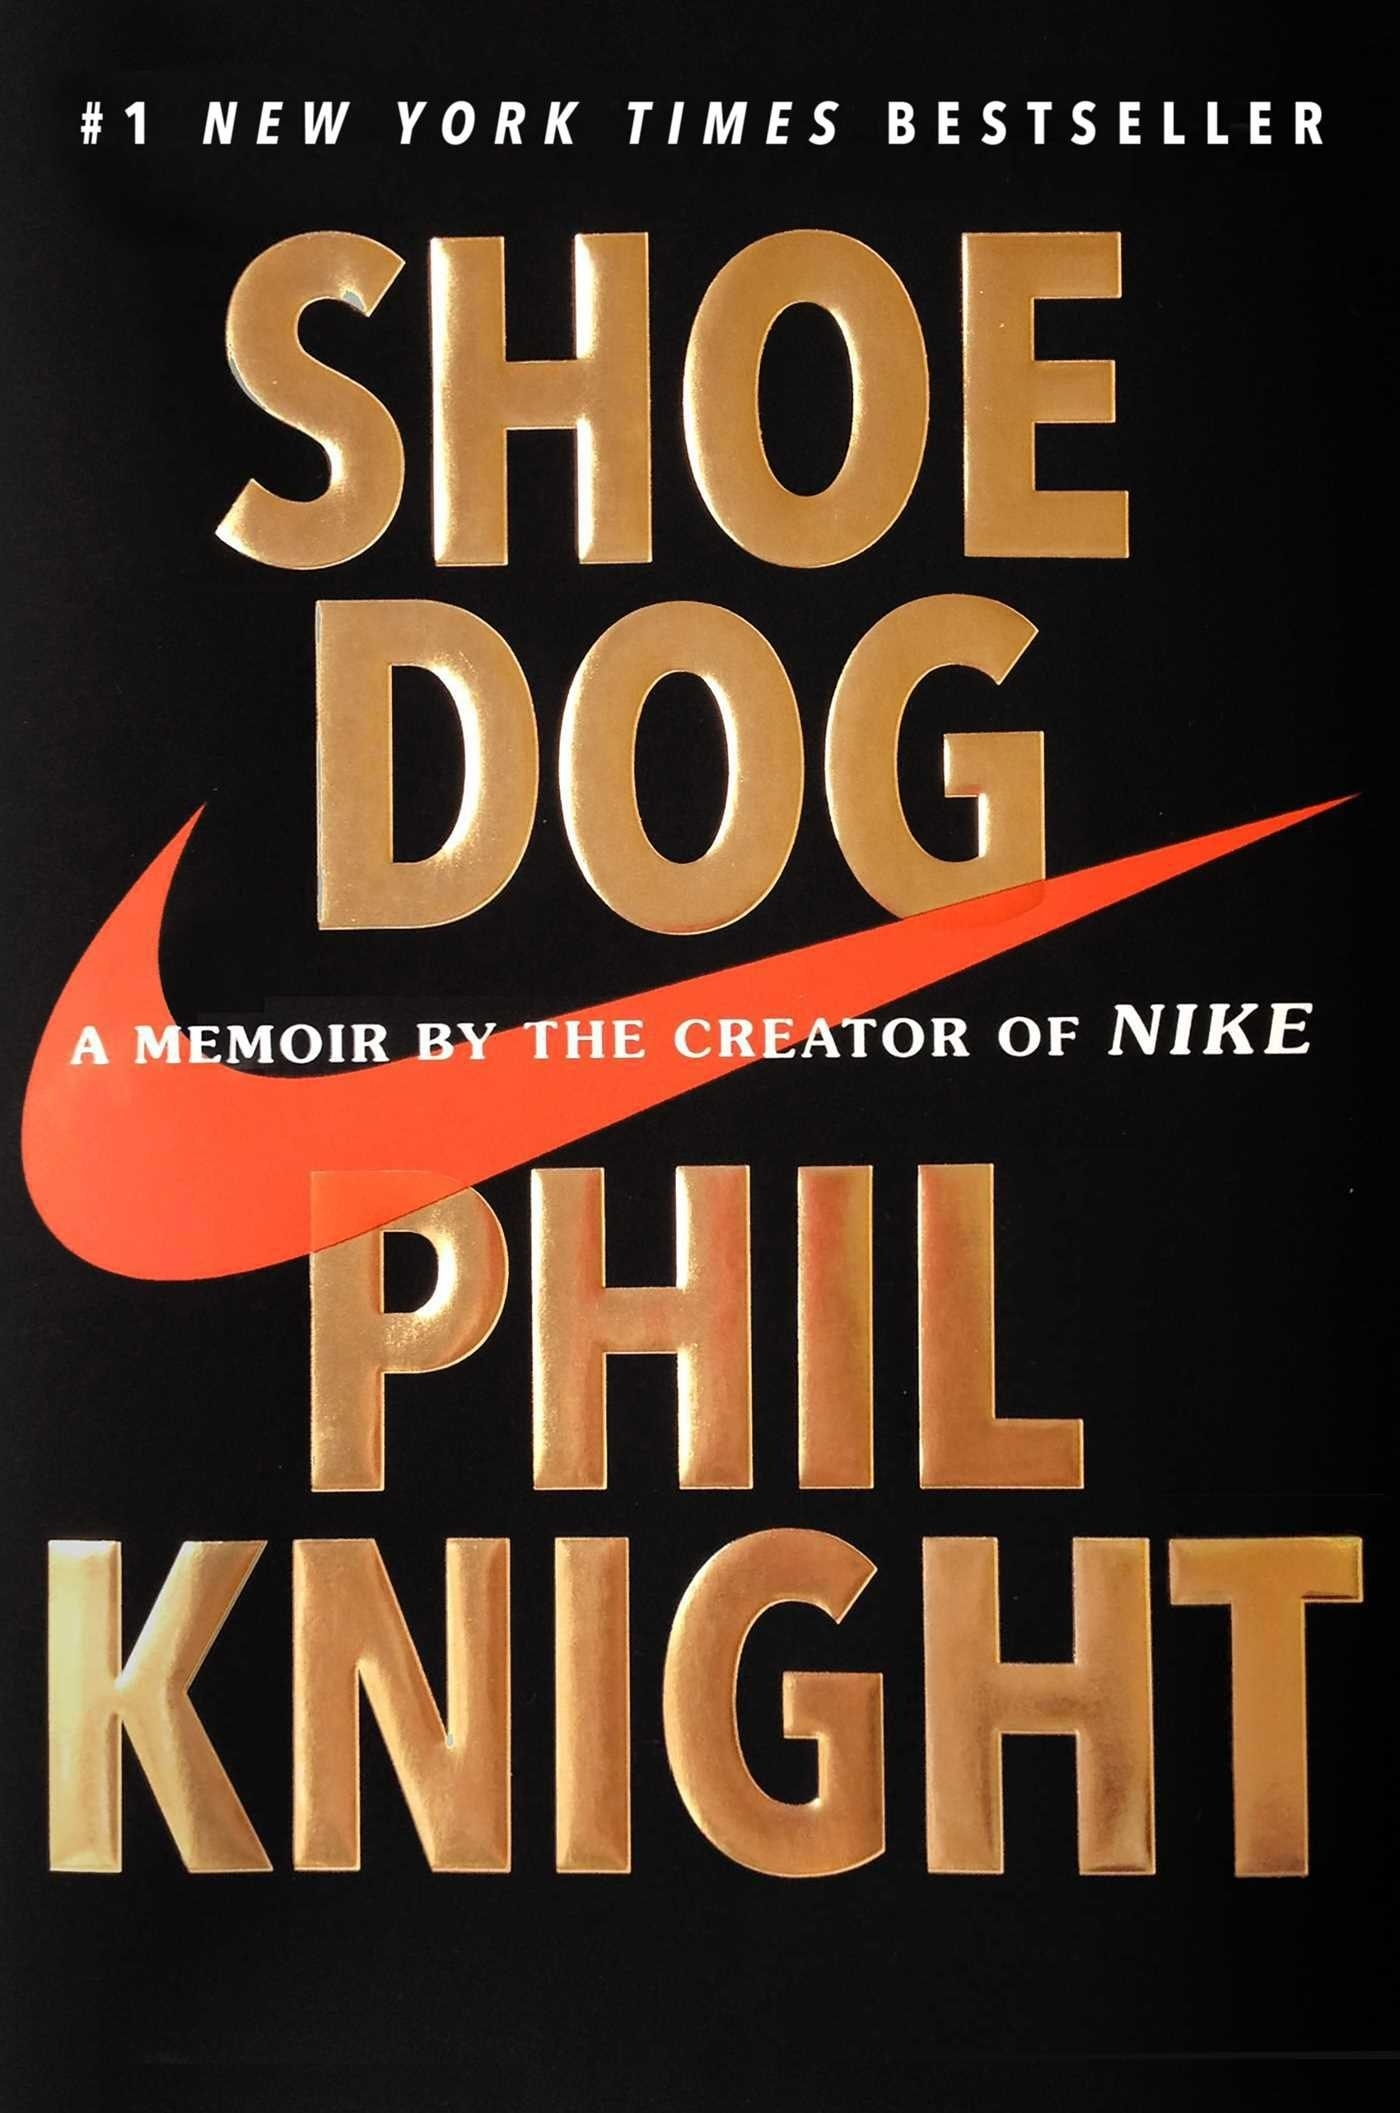 The cover of Shoe Dog with a big orange Nike swoosh logo across the middle